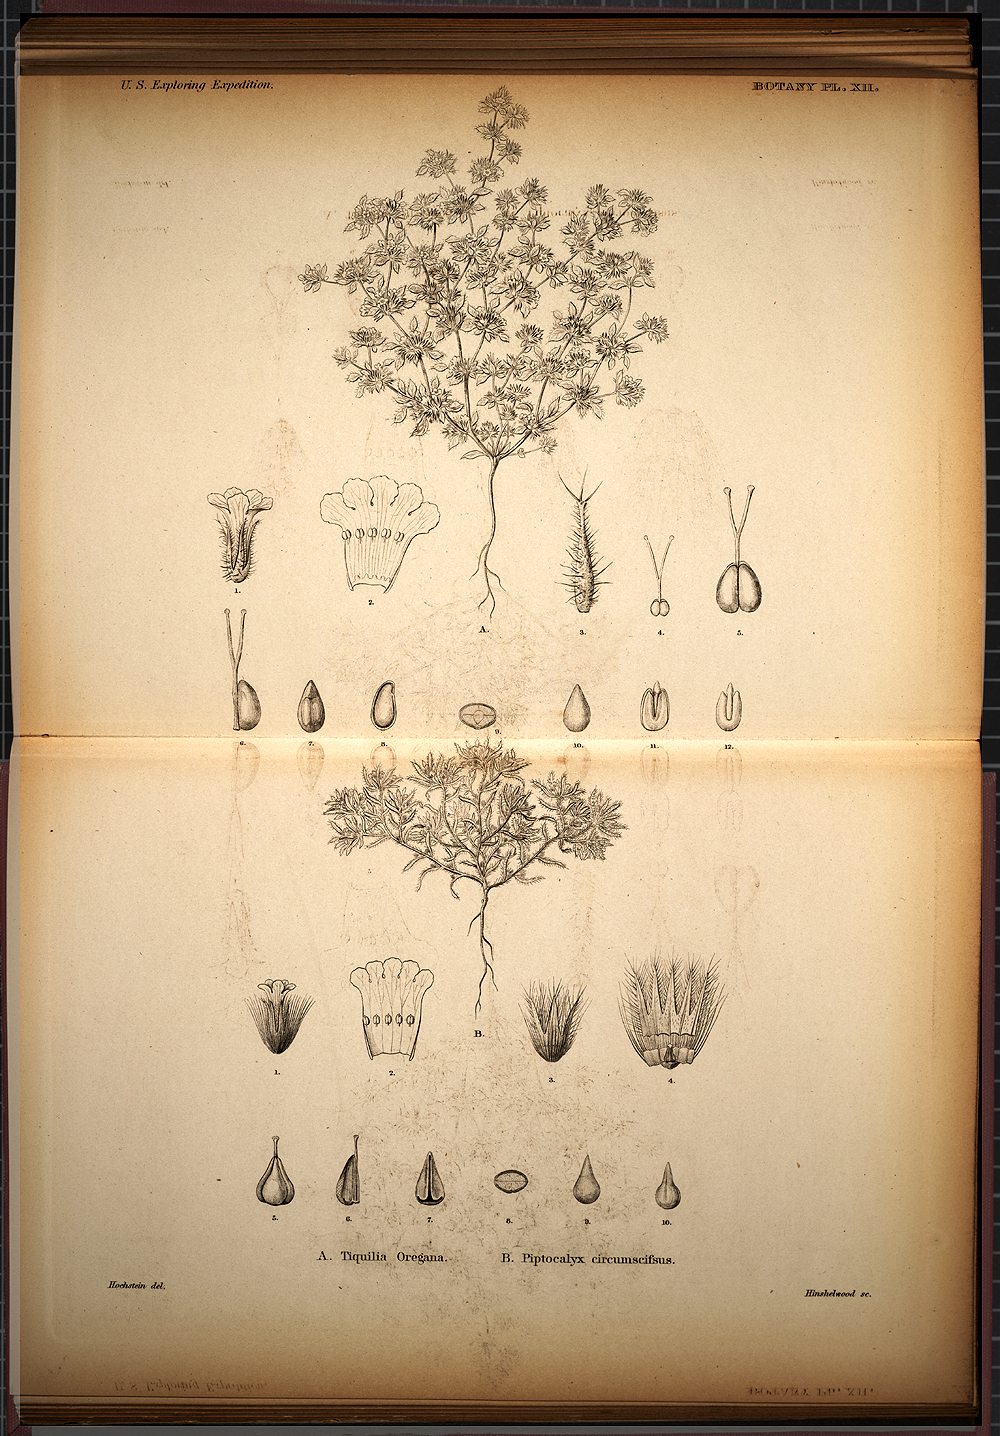 Botany, Plate XII,  Image number:SIL19-28-047